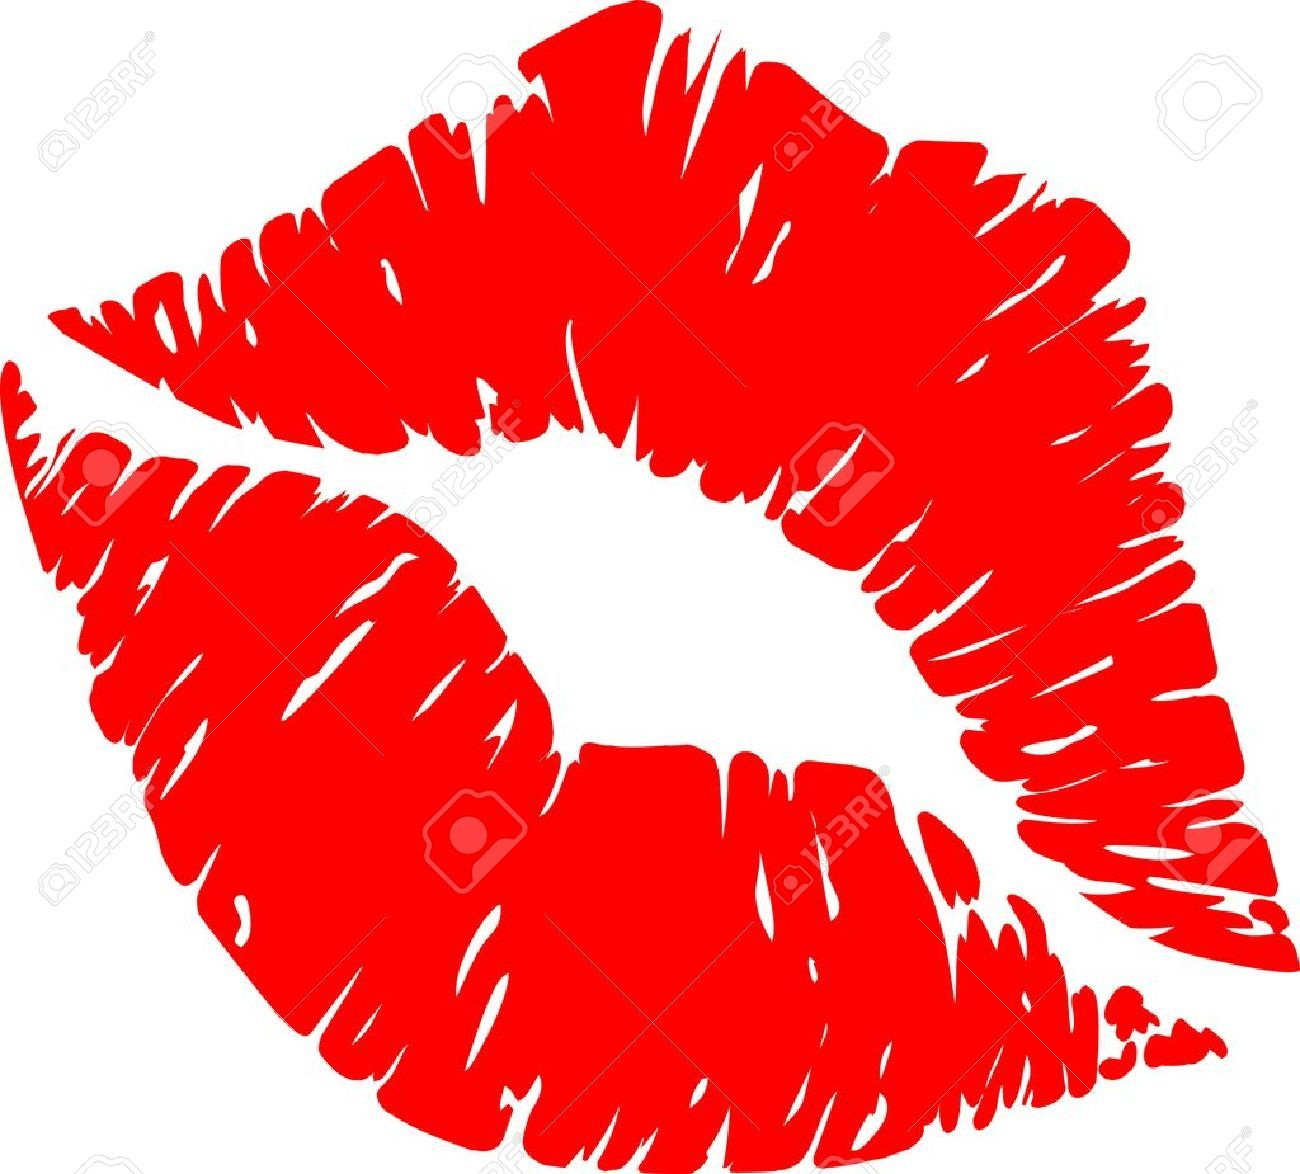 Kissing lips images clipart png library stock Red lips kiss clipart - ClipartFest | Graphic Design | Lips cartoon ... png library stock